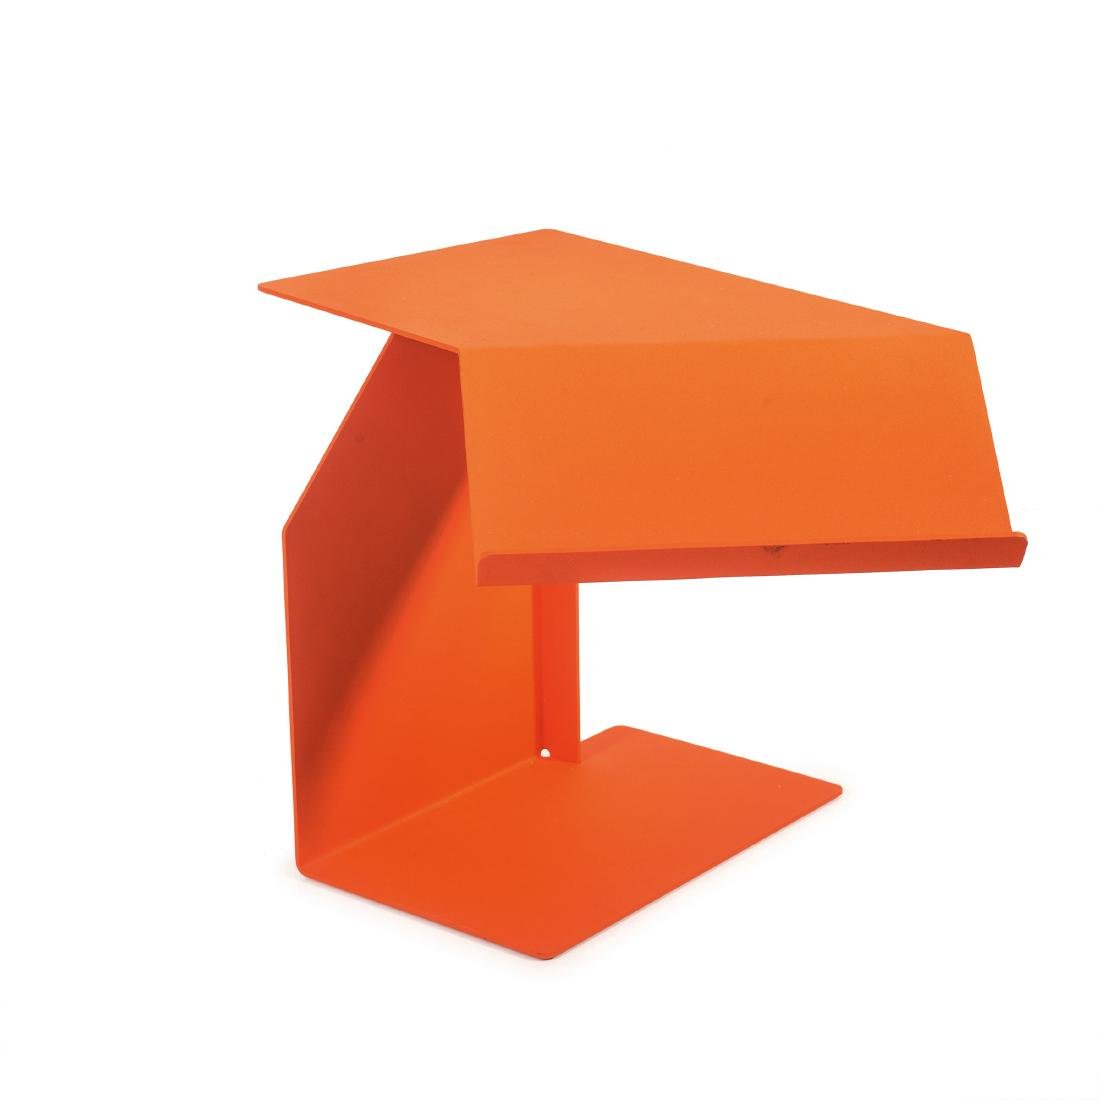 'DIANA F' side table, 2002